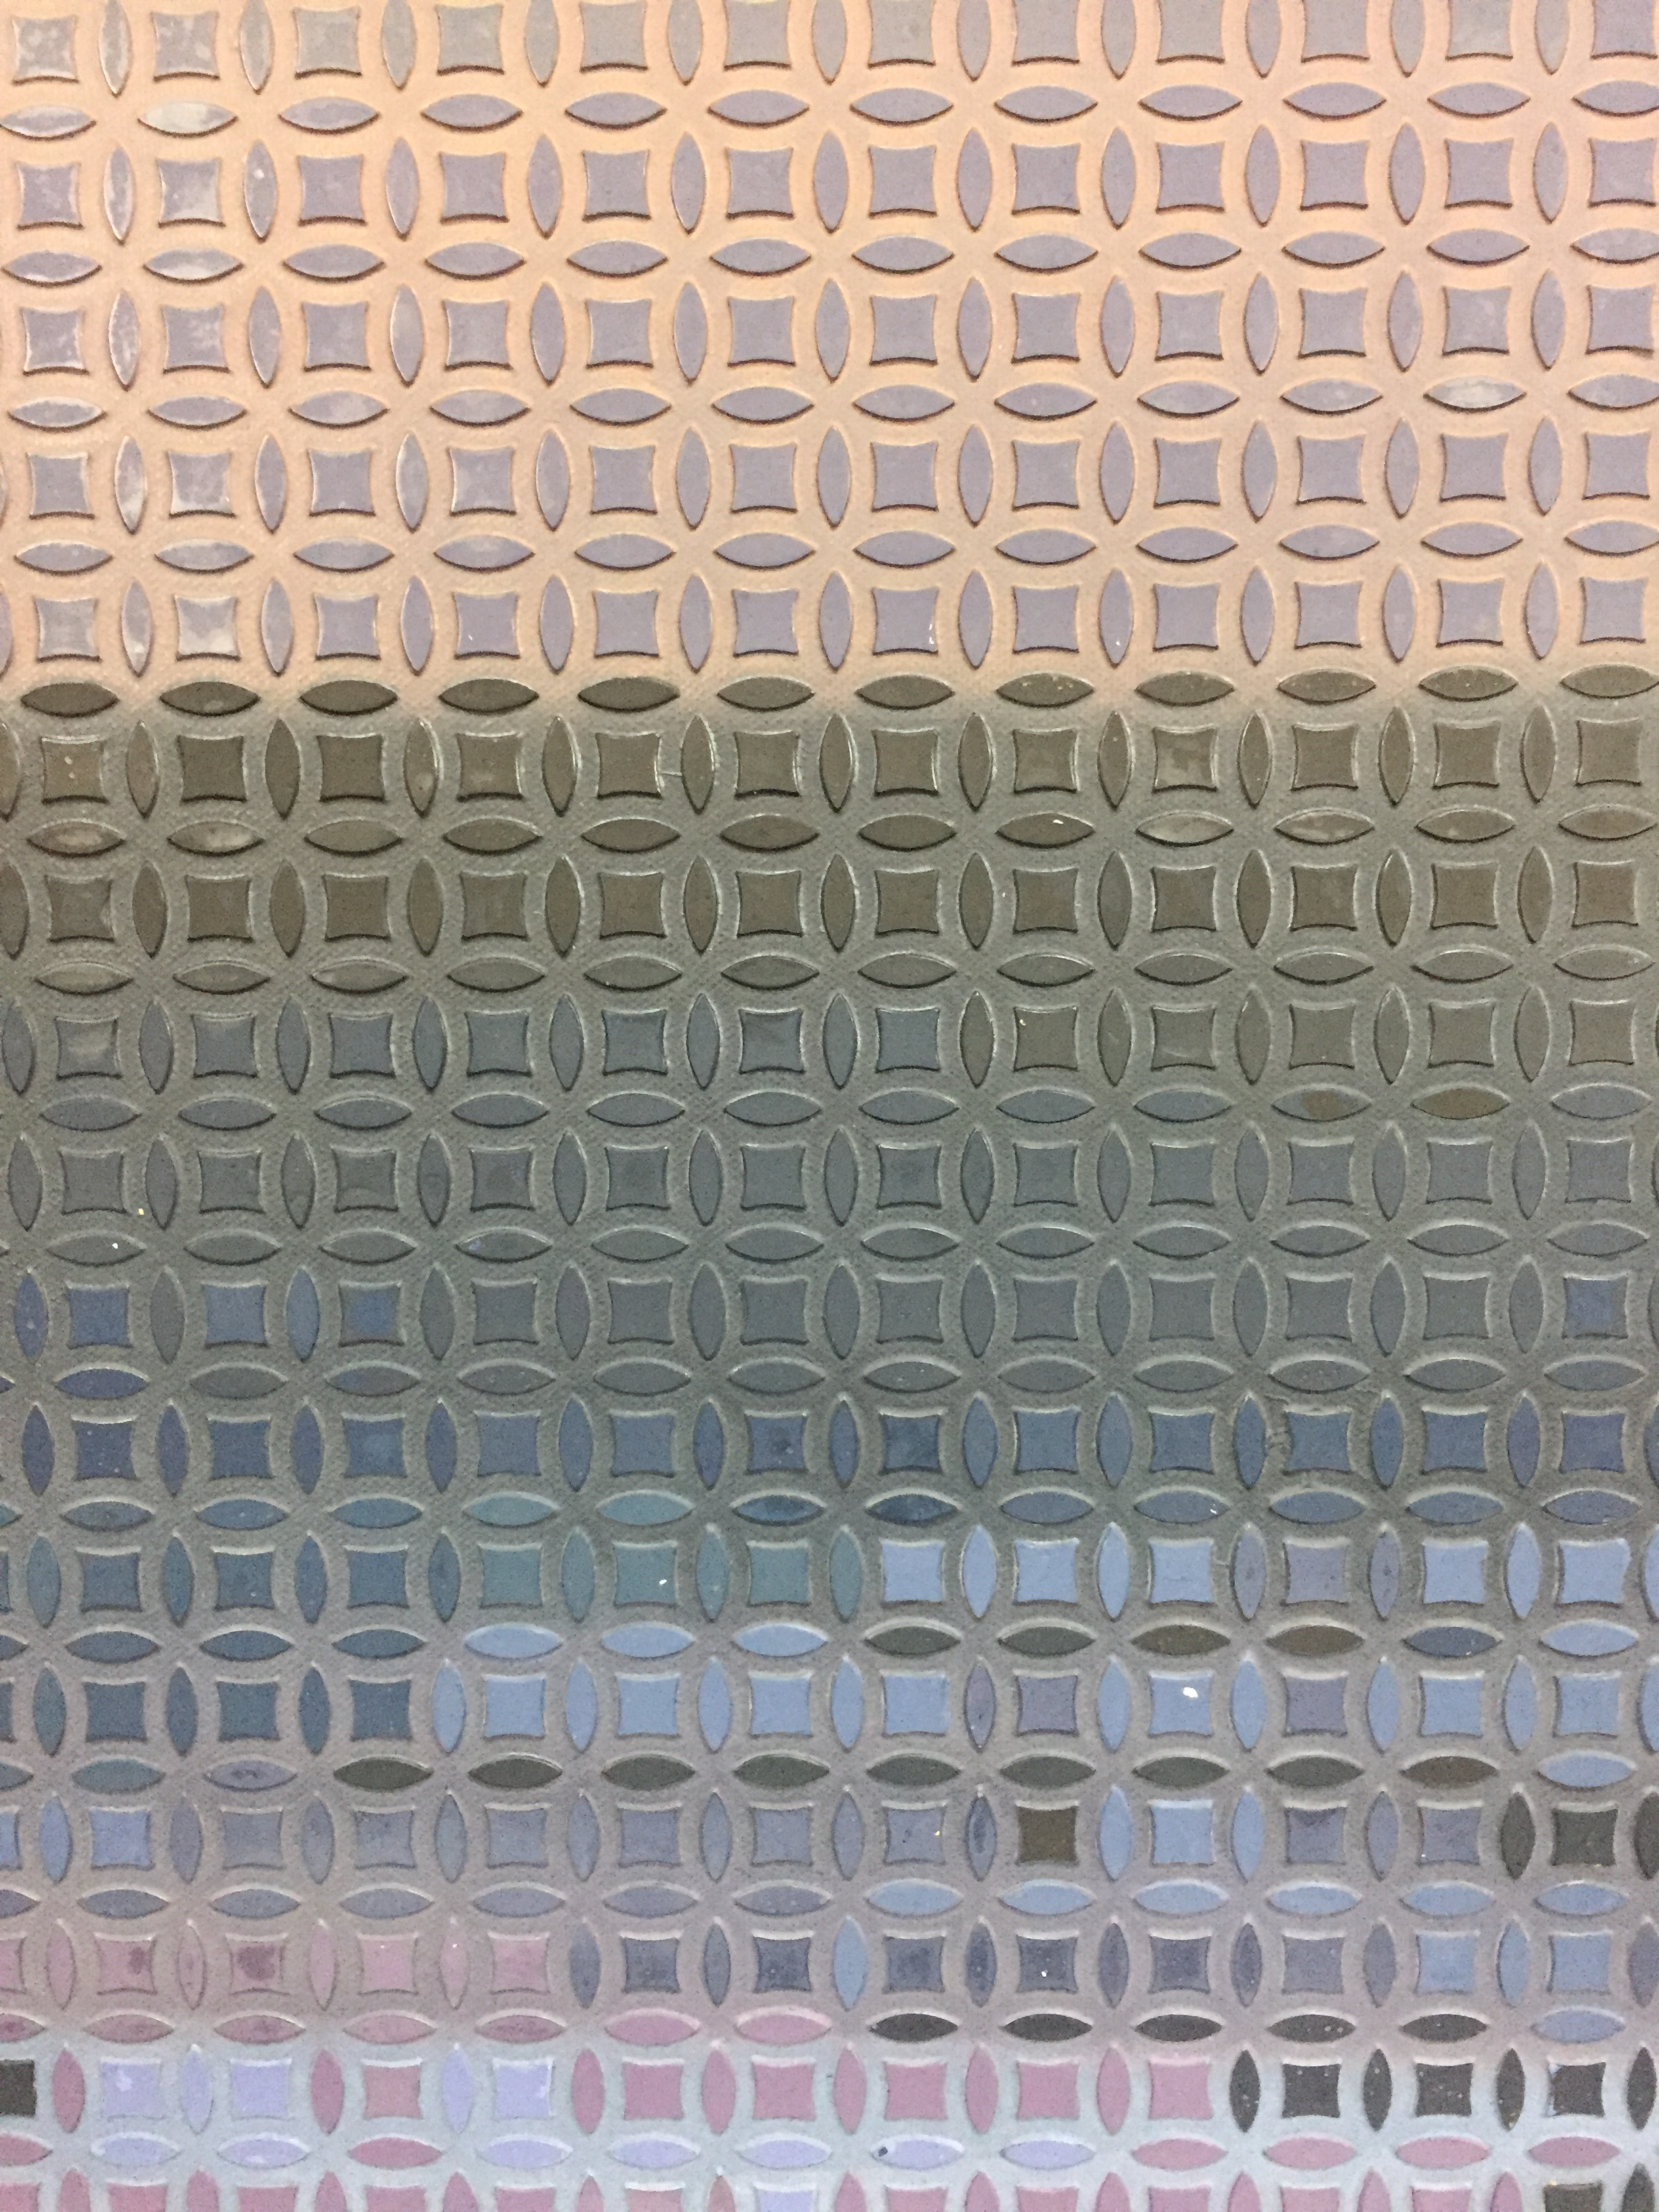 Roger Toledo,  Al Anochecer  ( At Dusk ) (detail), 2018, Acrylic on canvas, 78 3/4 x 118 inches (200 x 300 cm); Comprised by six panels of 39 3/8 x 39 3/8 inches (100 x 100 cm).